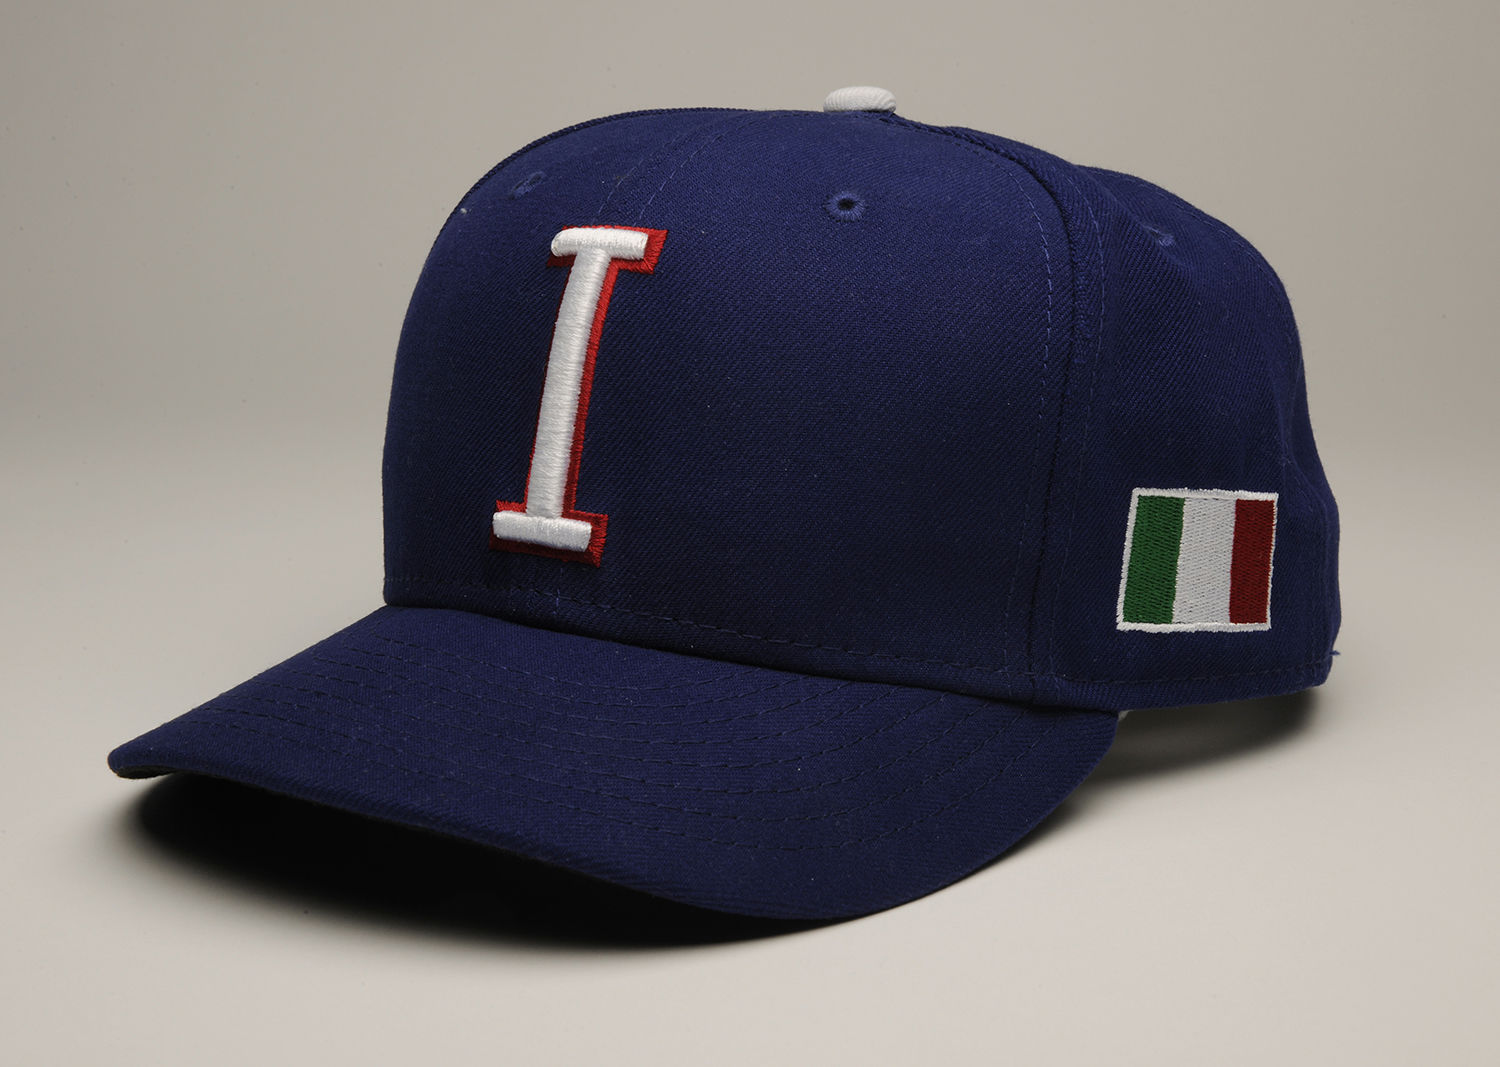 hofers history with world baseball classic